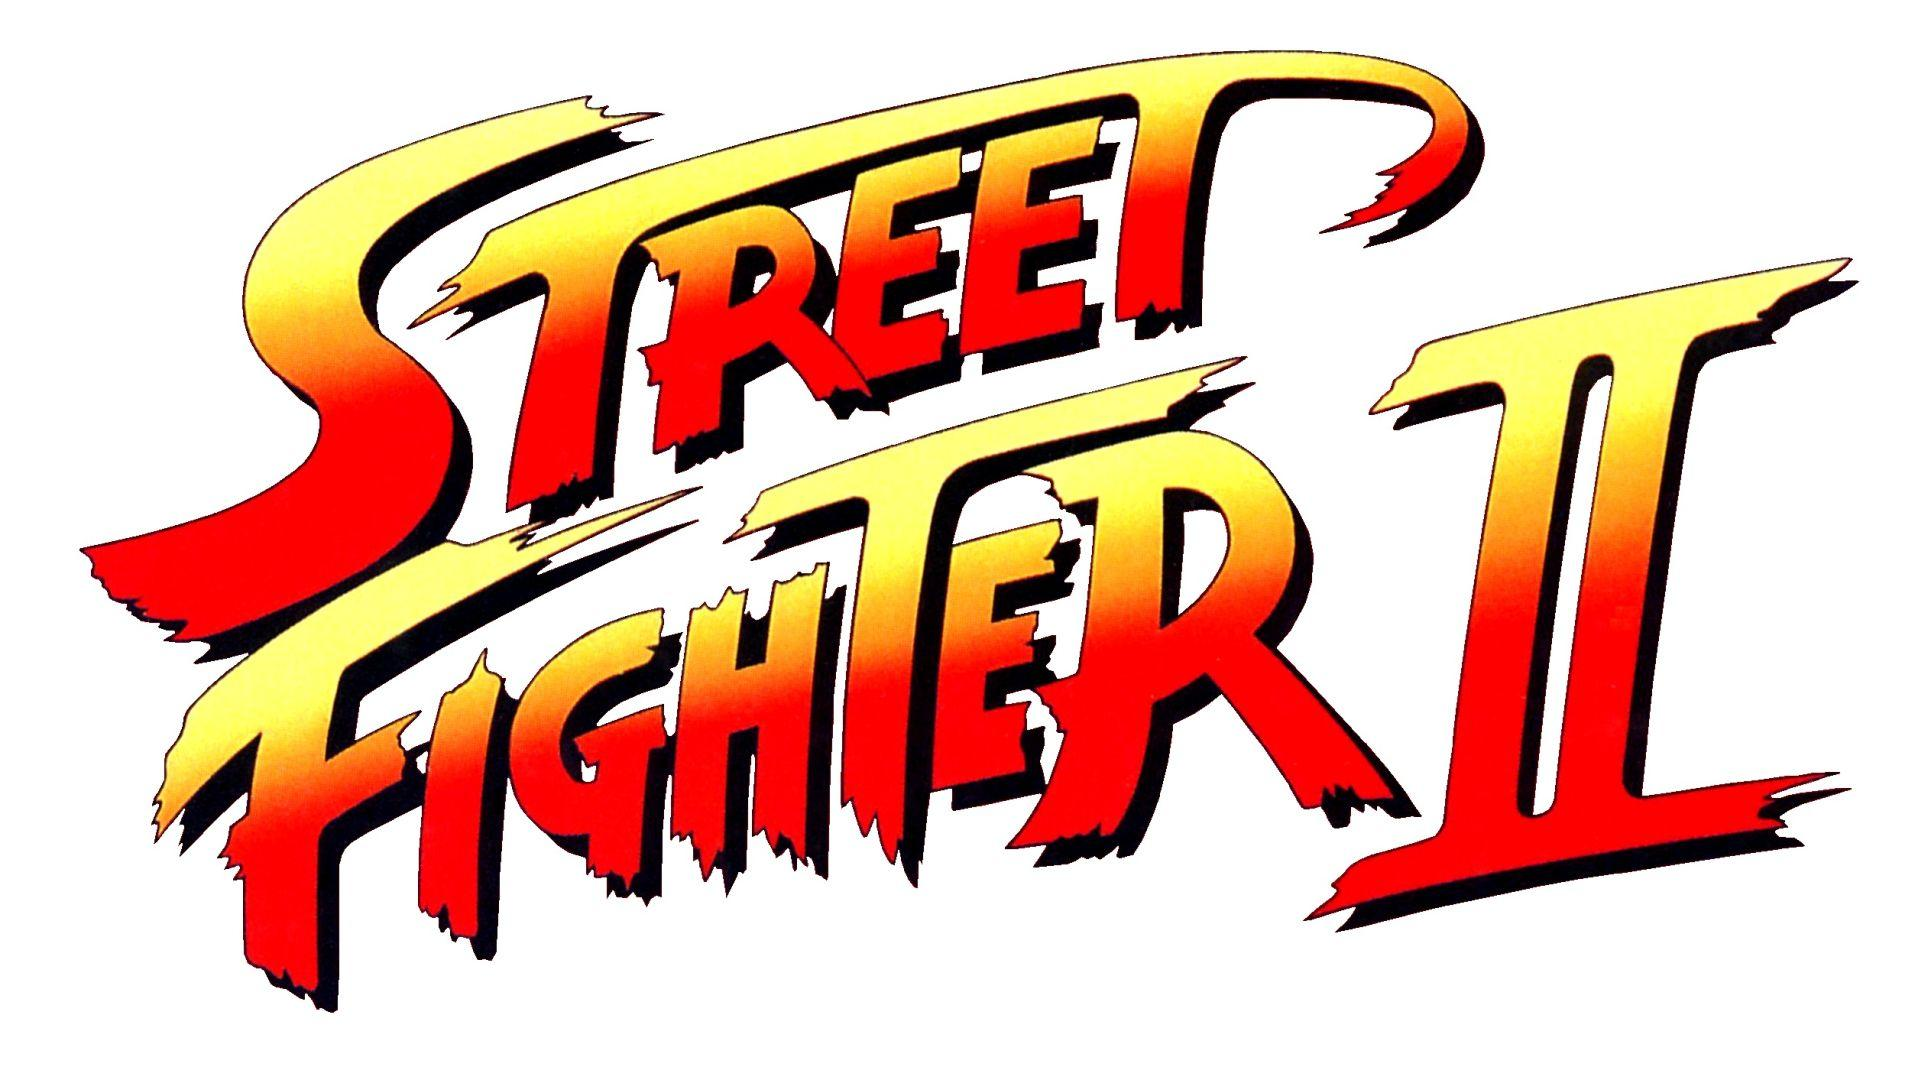 Street Fighter HD Wallpapers